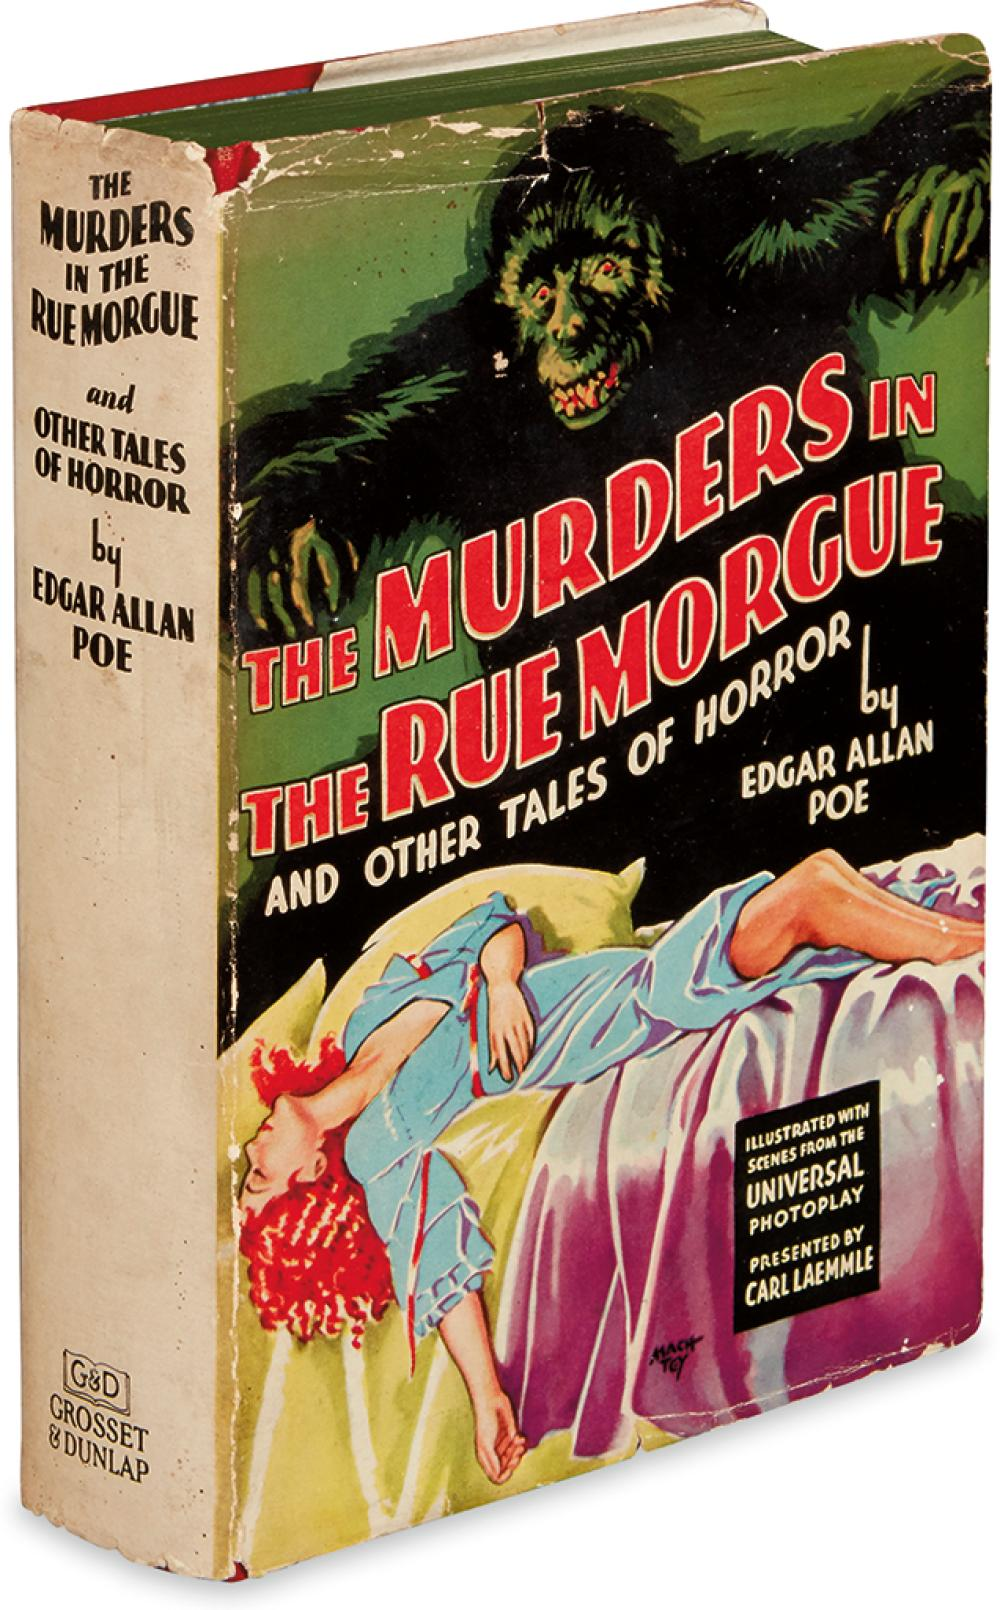 POE, EDGAR ALLAN. The Murders in the Rue Morgue and Other Tales of Mystery.